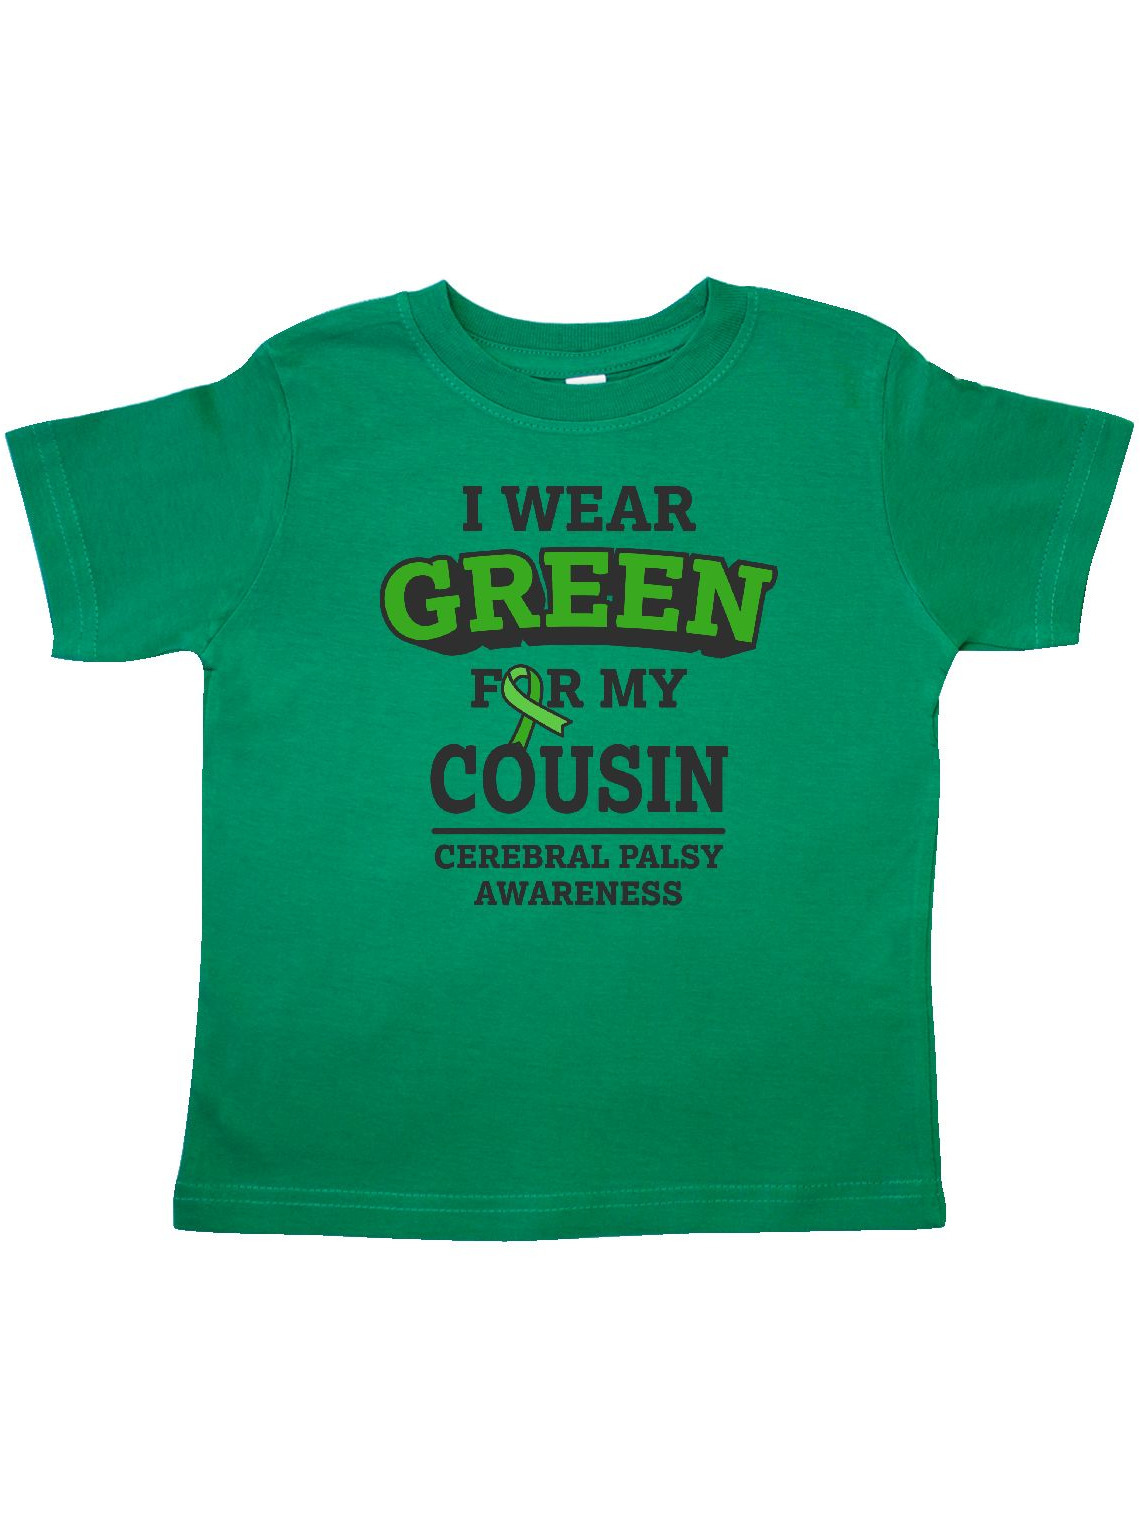 Cerebral Palsy Awareness Baby T-Shirt inktastic I Wear Green for My Cousin